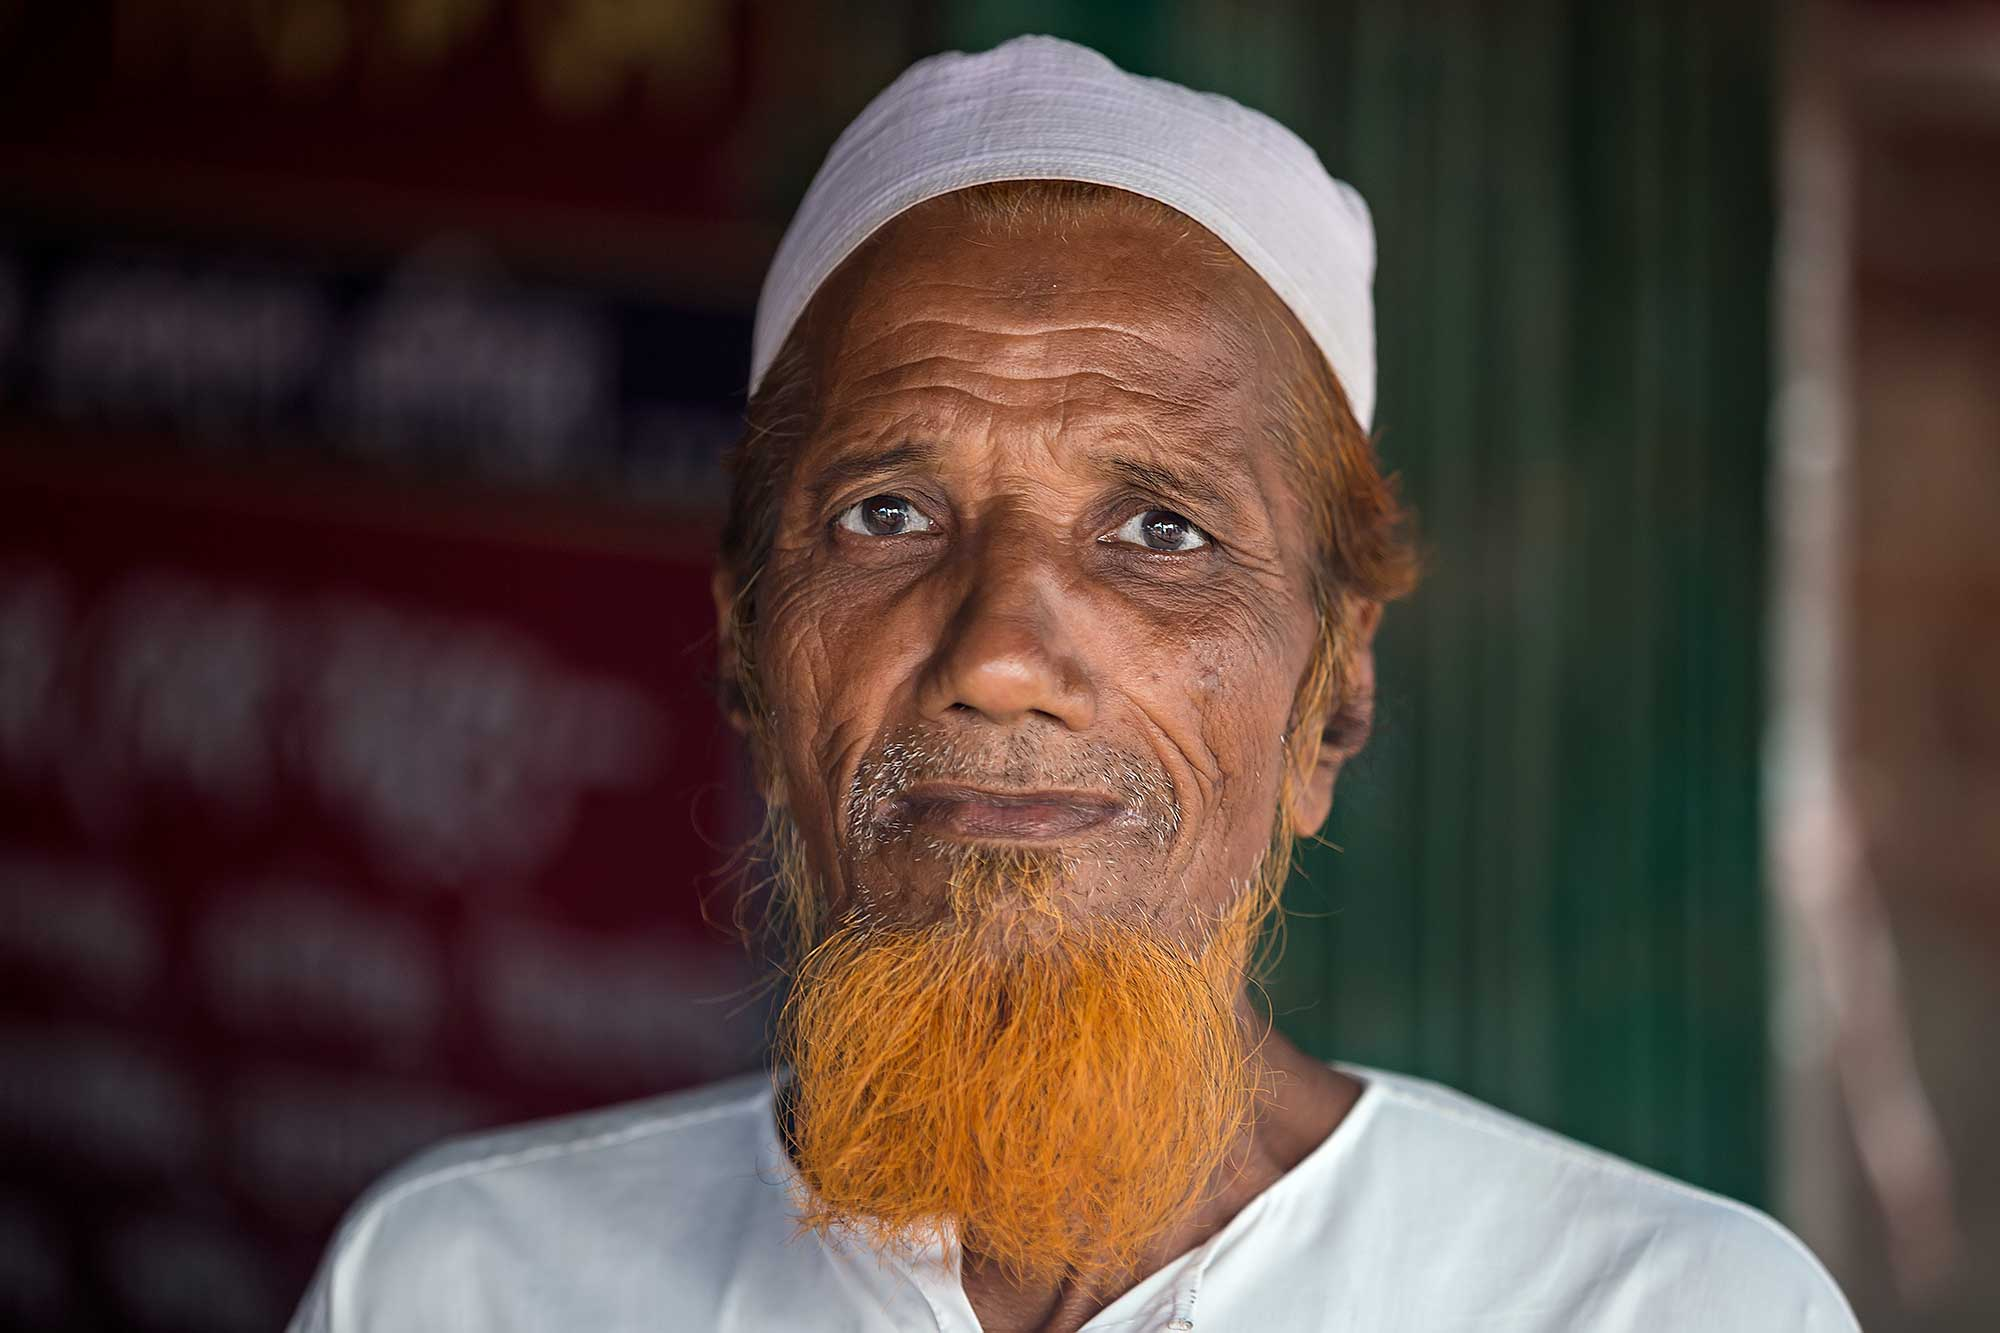 portrait-man-orange-beard-chittagong-bangladesh